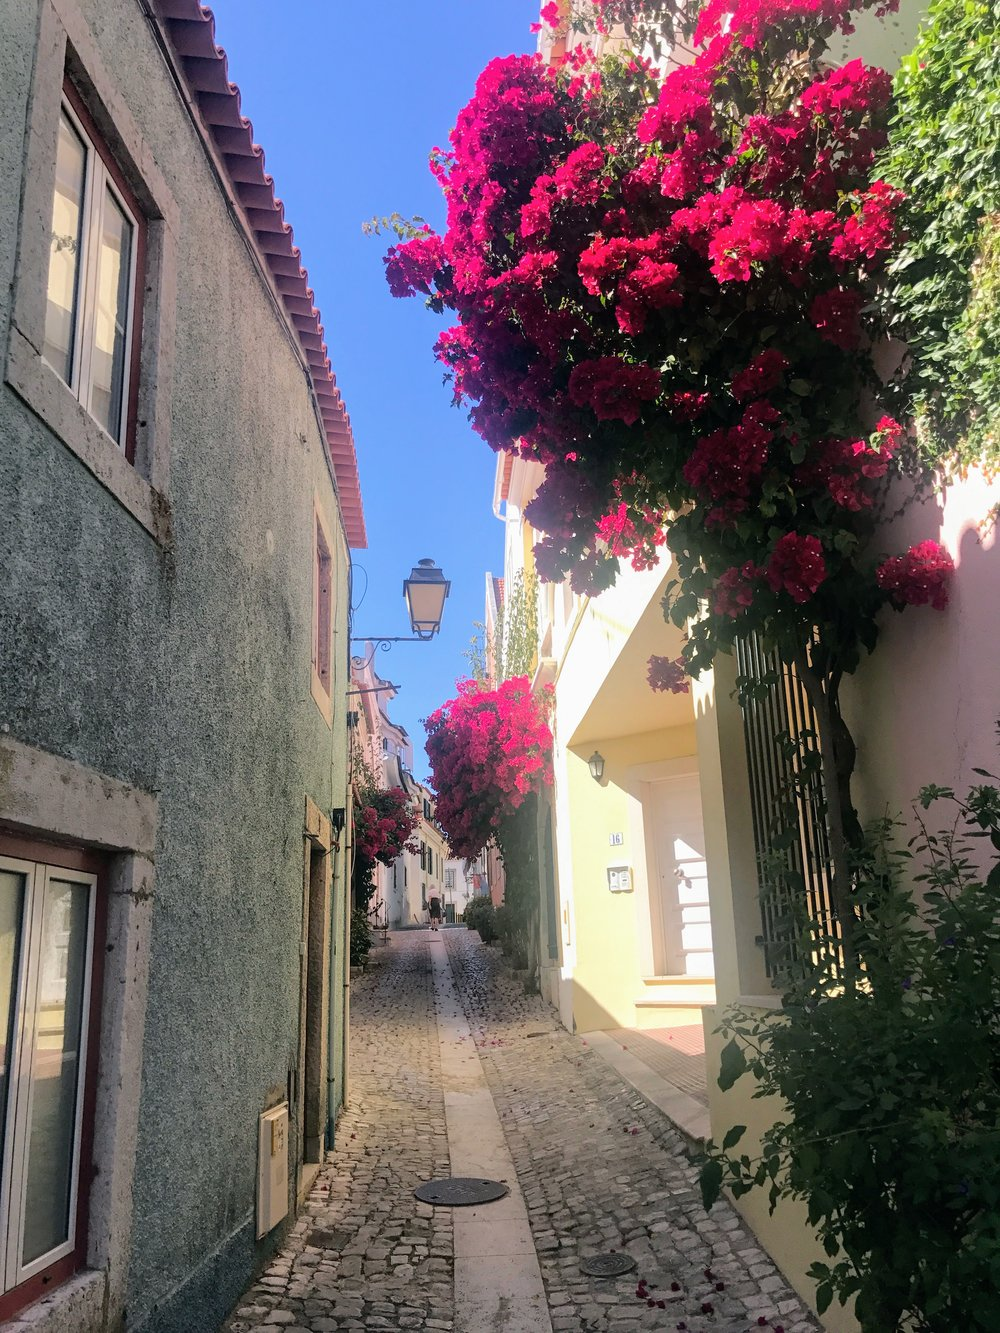 The streets of Cascais.